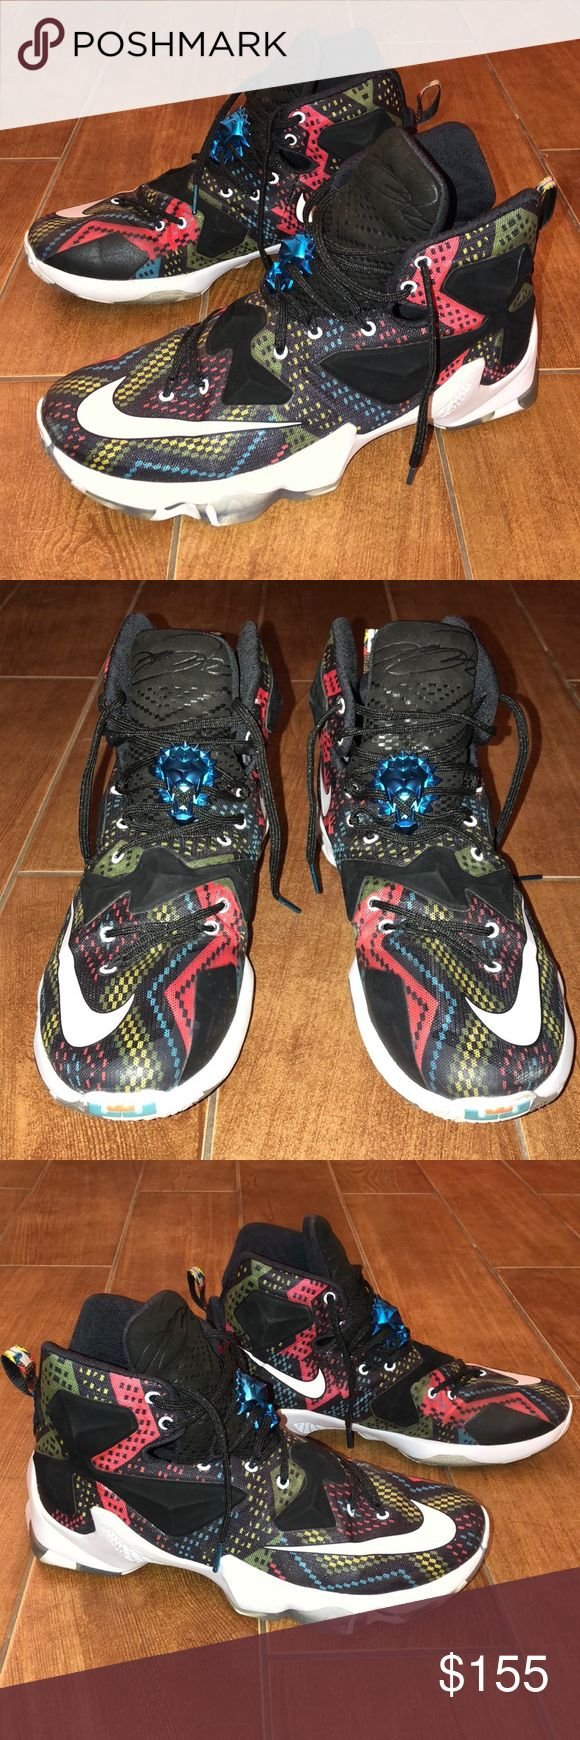 Like New Nike LeBron XIII BHM Multicolor size 10.5 Nike LeBron 13 BHM Multi-color edition   Size 10.5  Like New condition - bought for my husband, worn for one game indoors but they were too small for him Nike Shoes Athletic Shoes